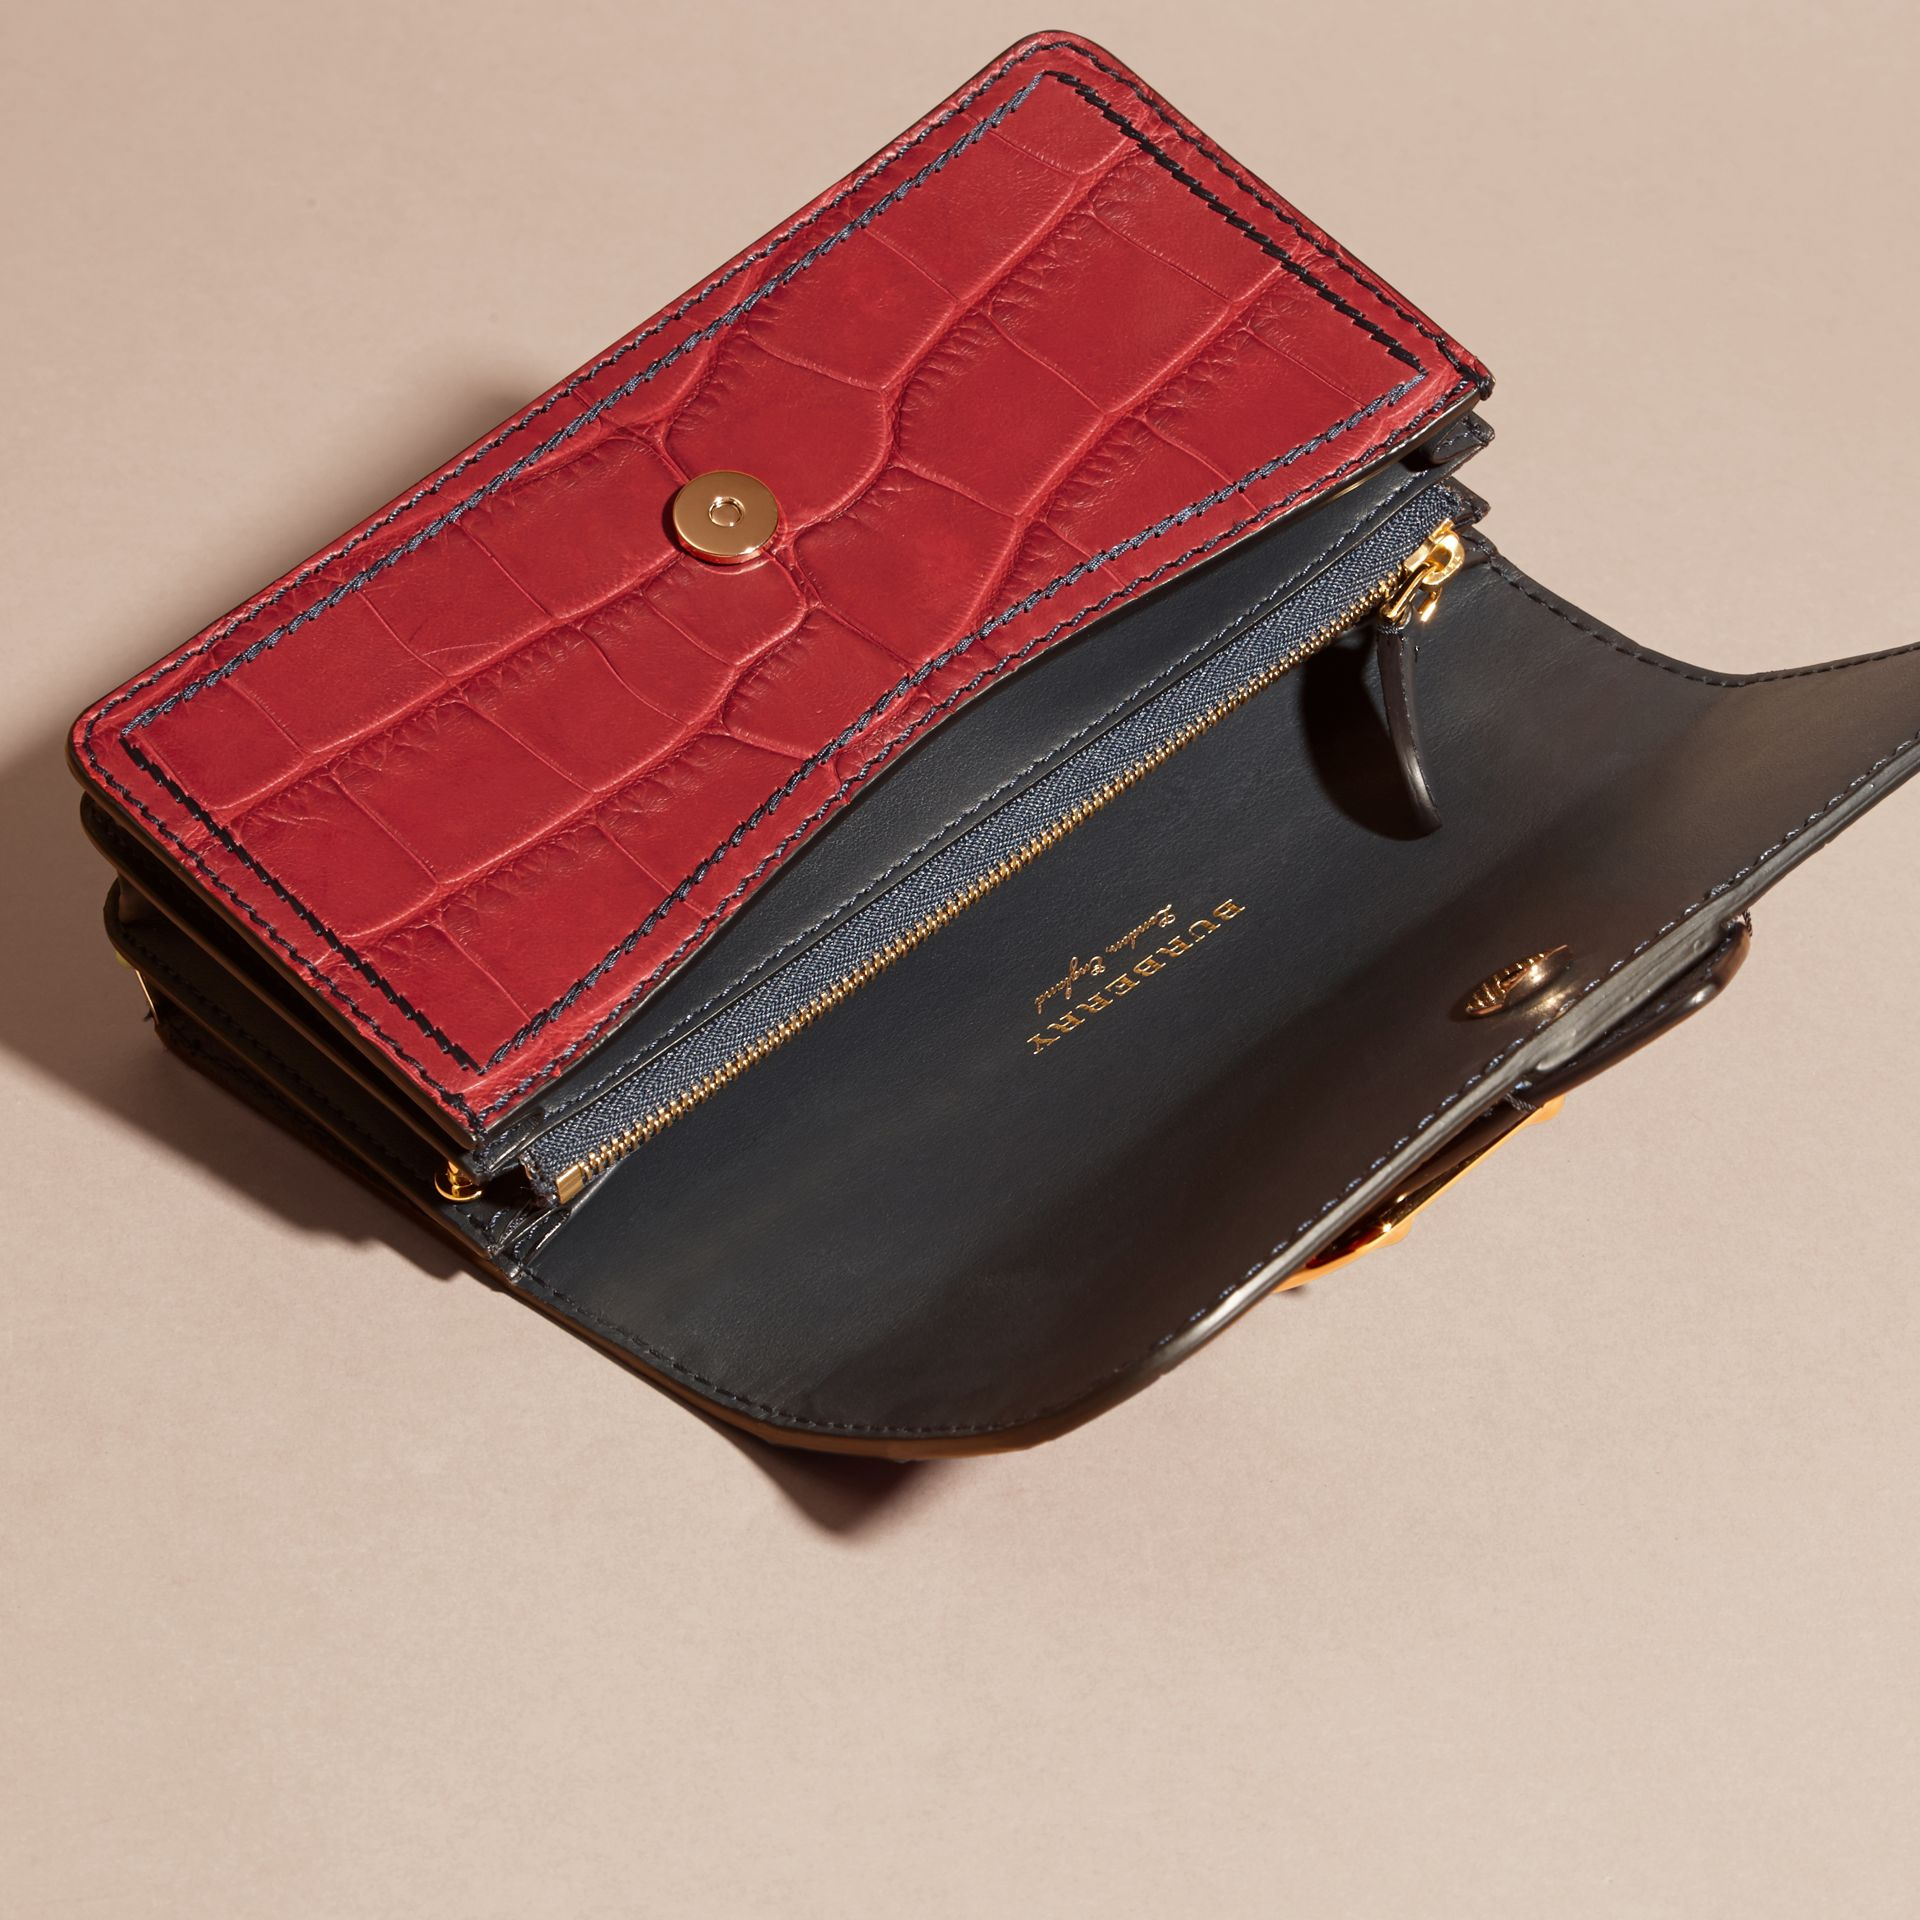 Garnet red/sapphire The Small Buckle Bag in Alligator and Leather Garnet Red/sapphire - gallery image 6